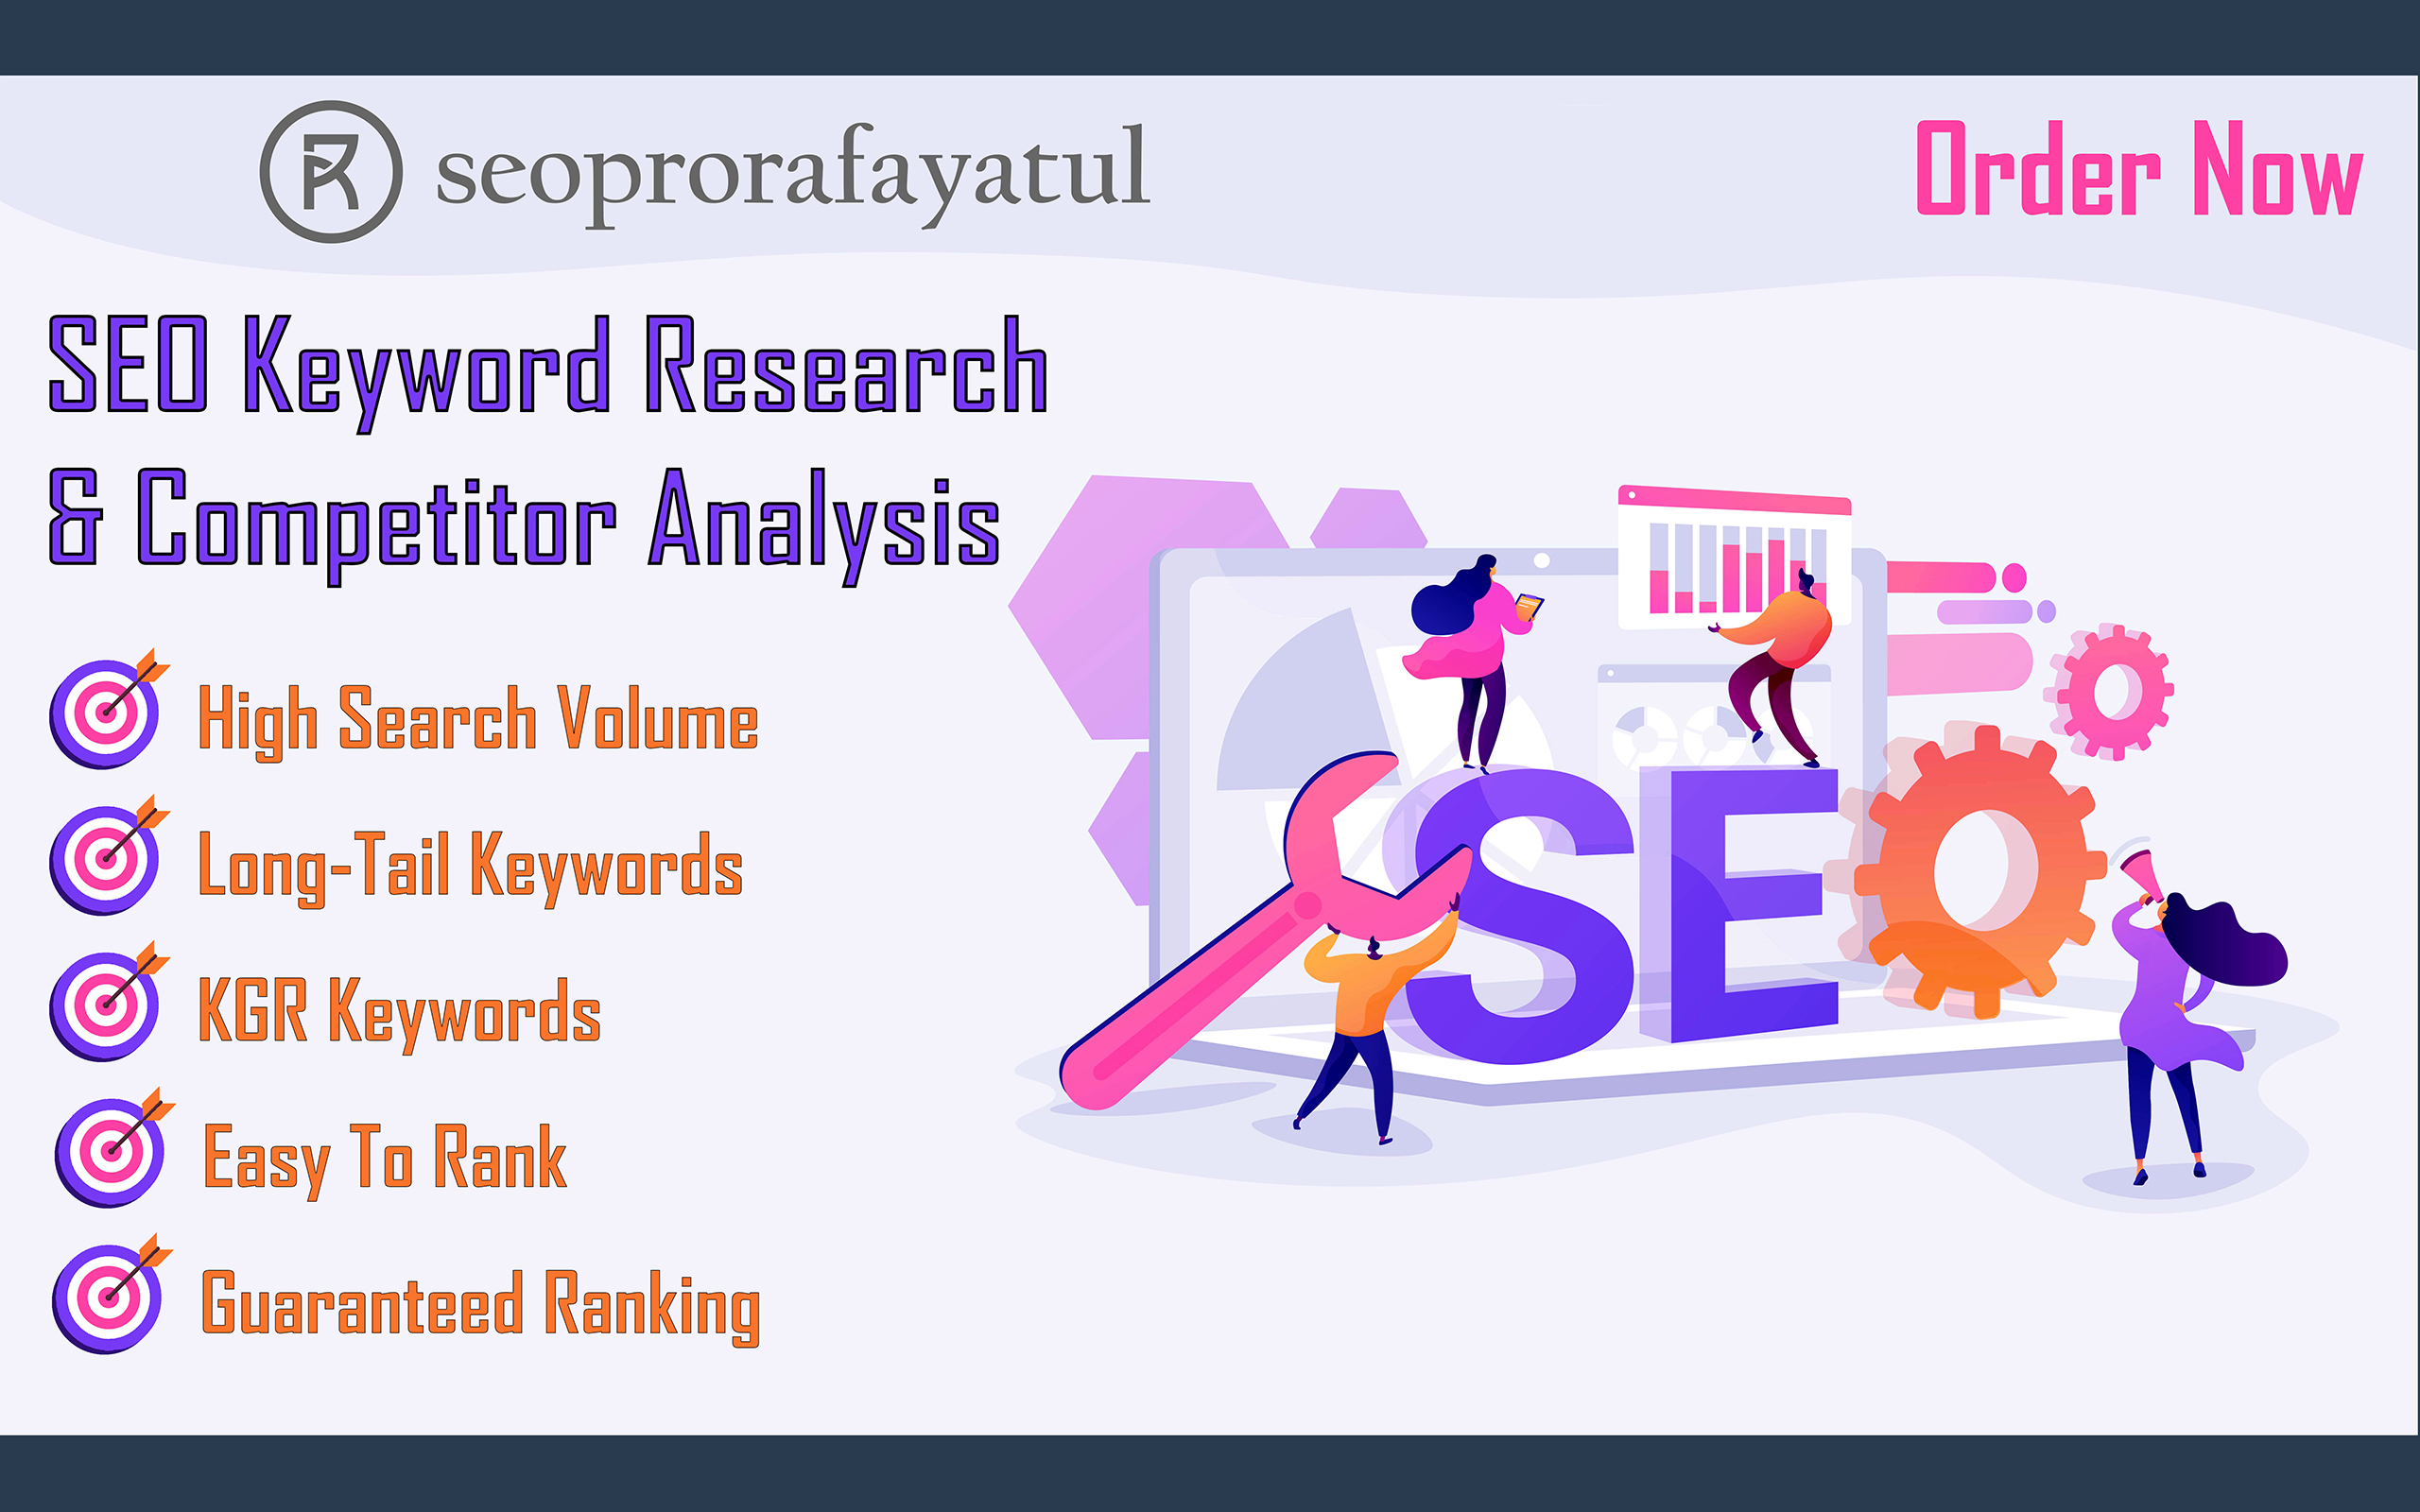 Get profitable keyword research with competitor analysis